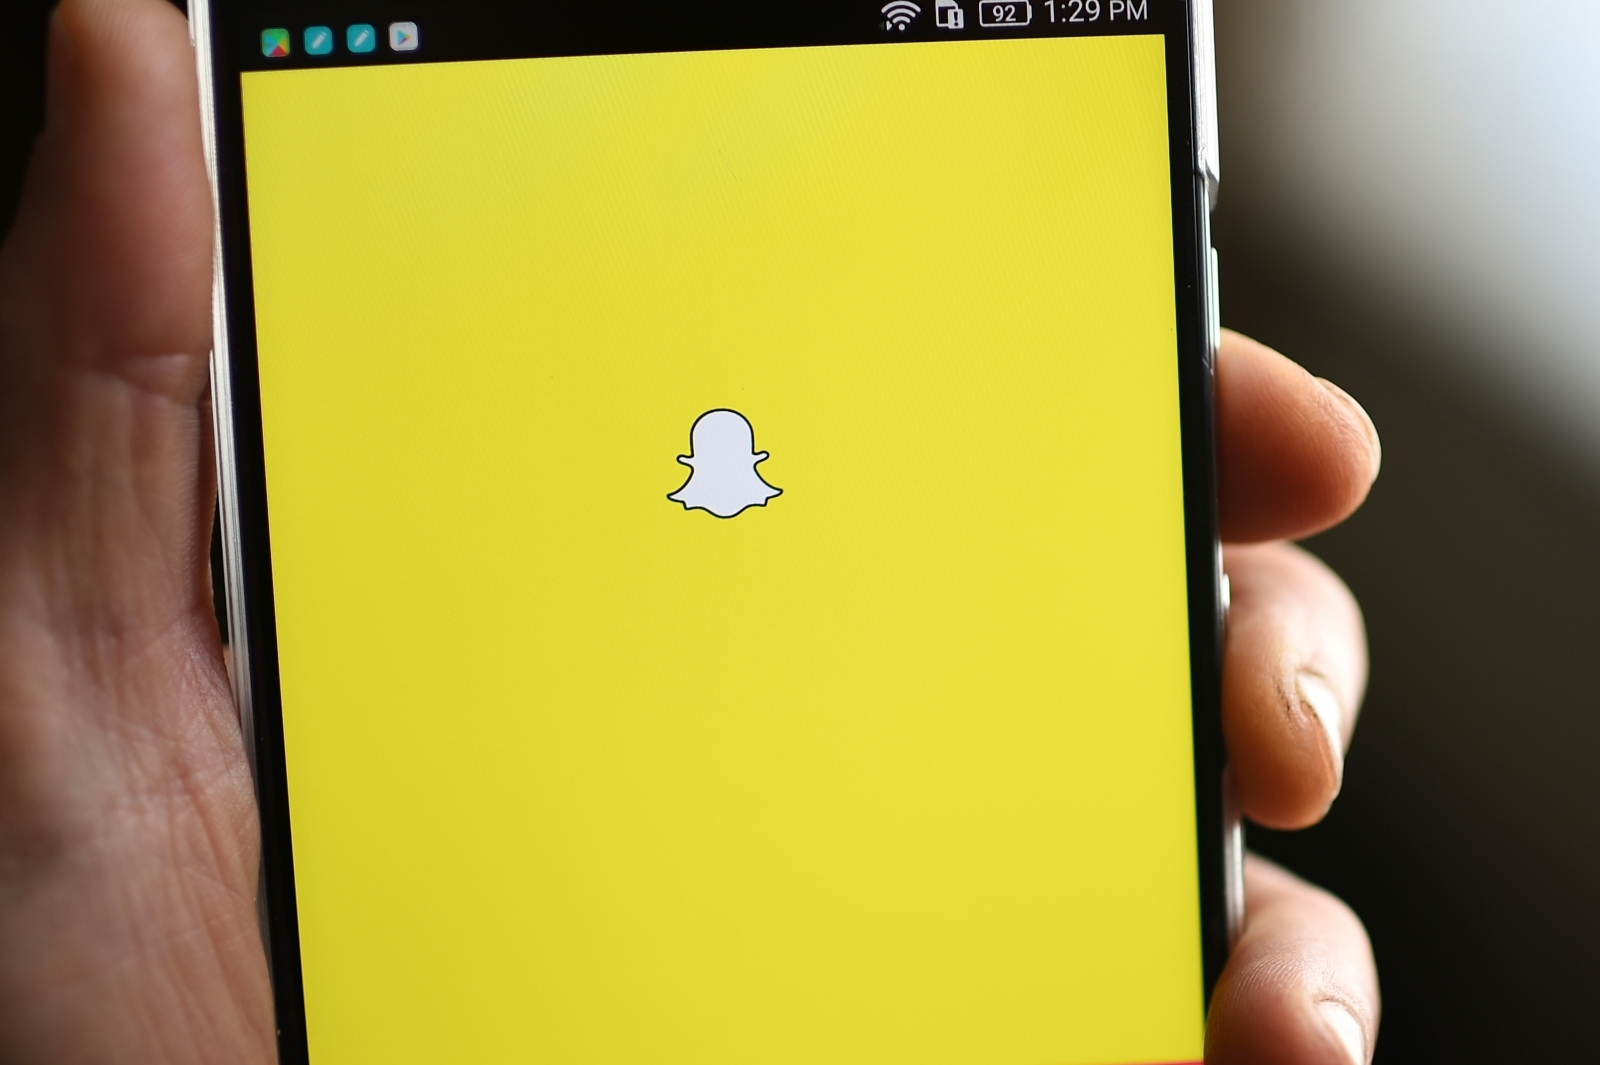 Sorry haters, Evan Spiegel is not sorry about Snapchat's redesign